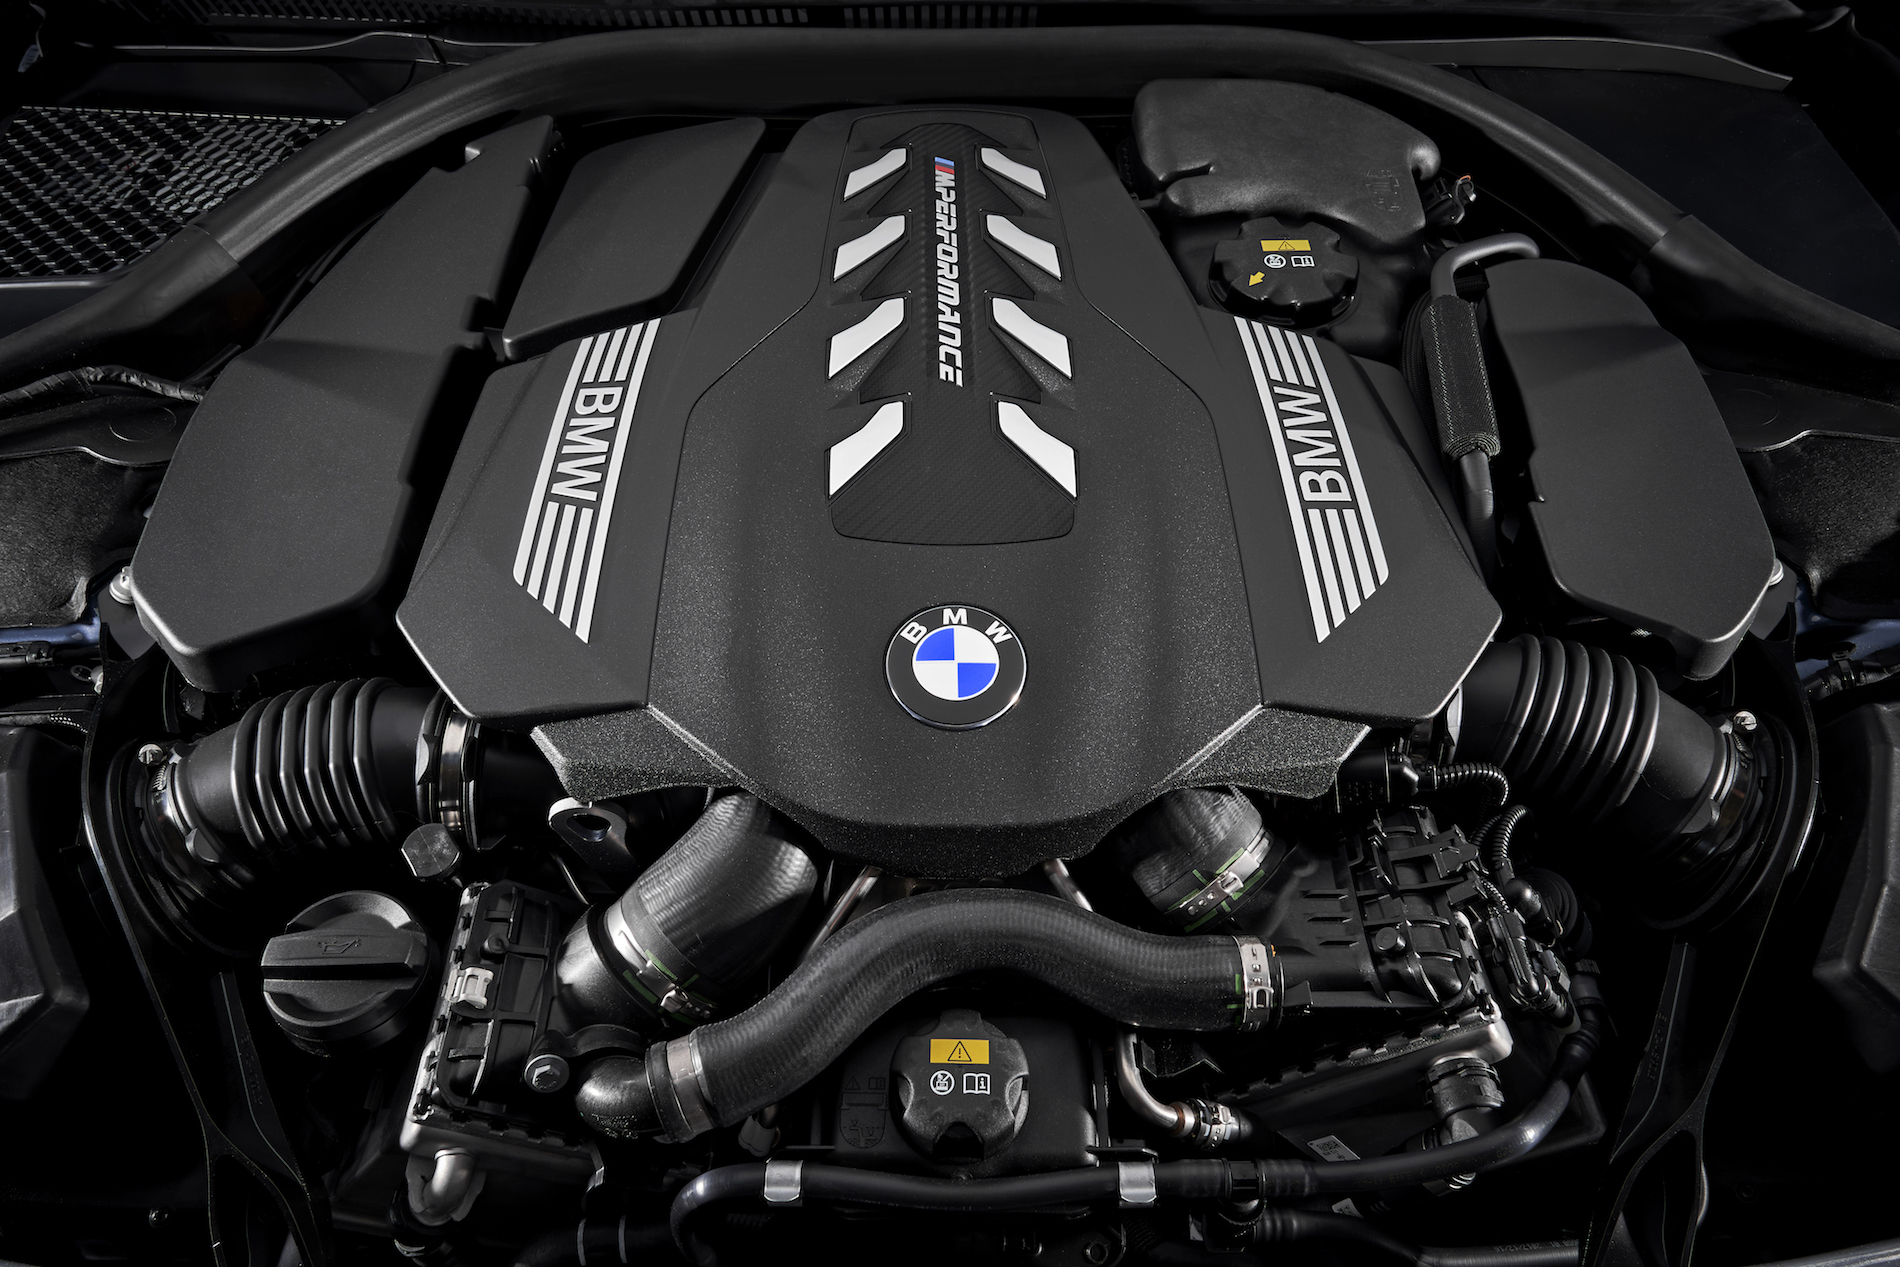 BMW M850i engine